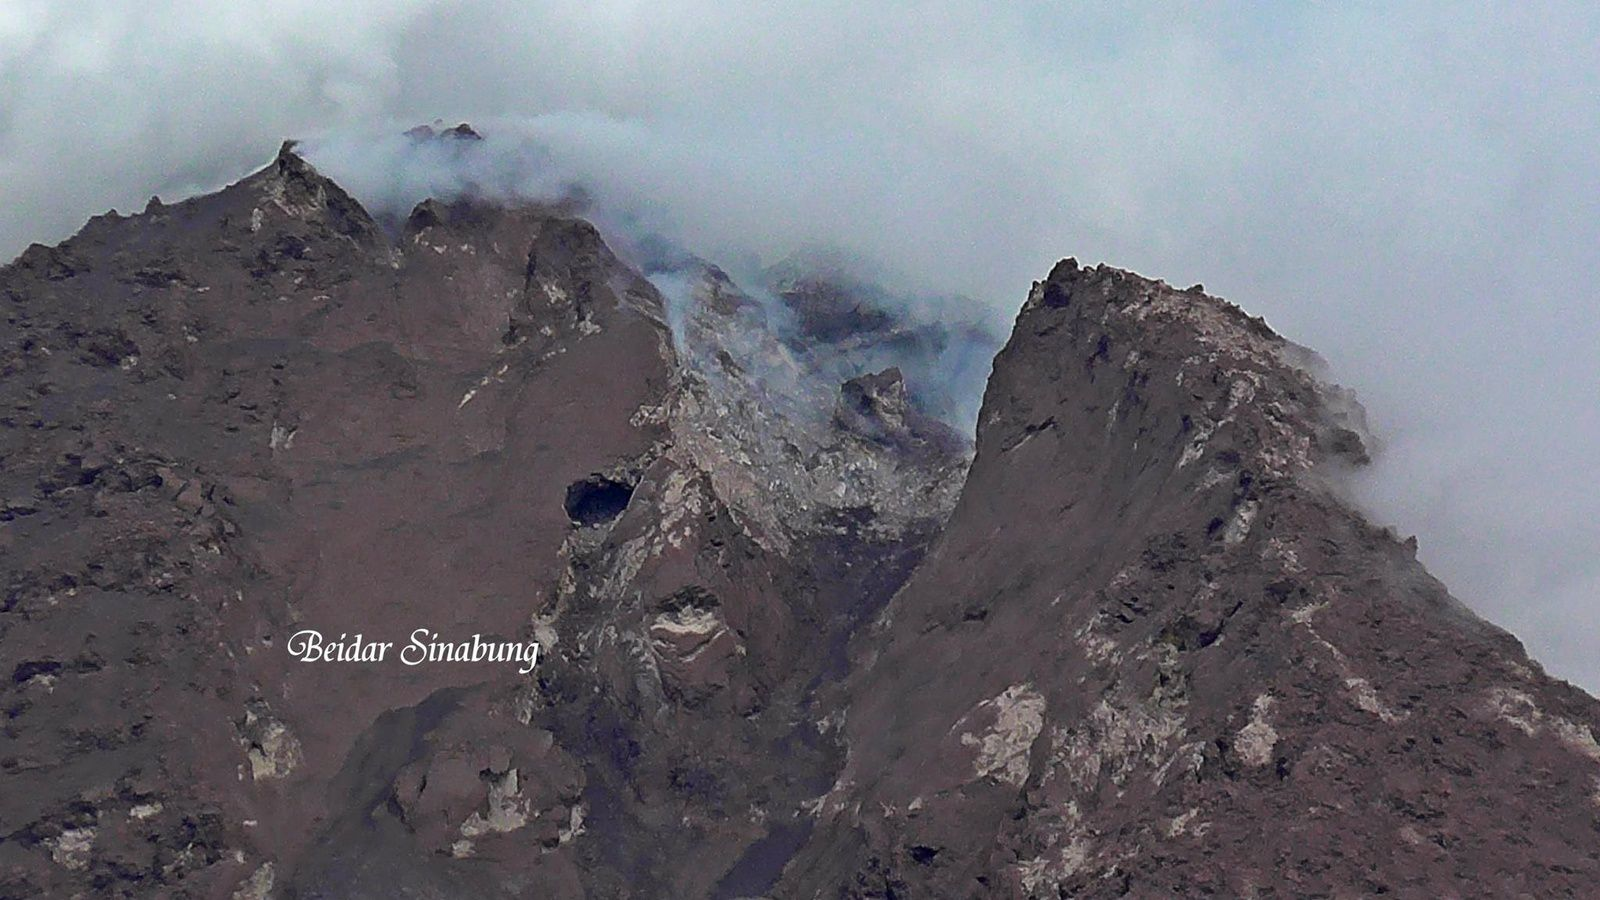 Sinabung, evolution of the summit dome - 11.25.2015 - photo Firdaus Surbakti via Beidar Sinabung